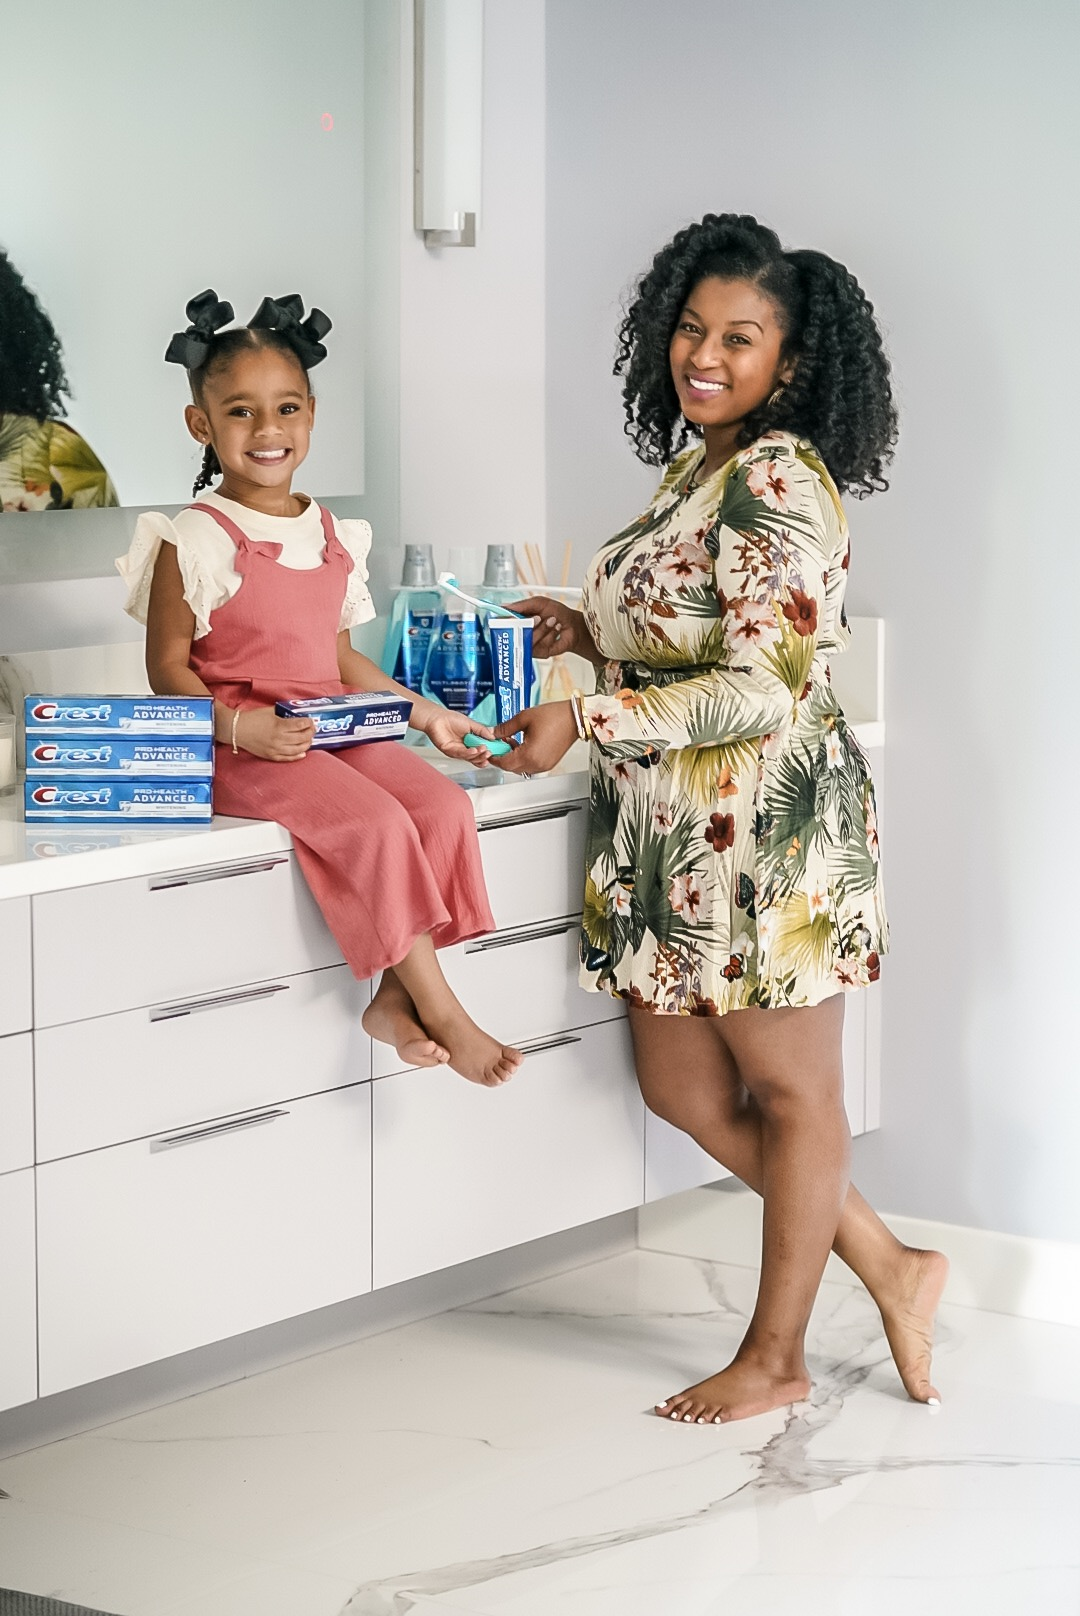 mother and daughter discussing whether you should brush or floss first using Crest products.